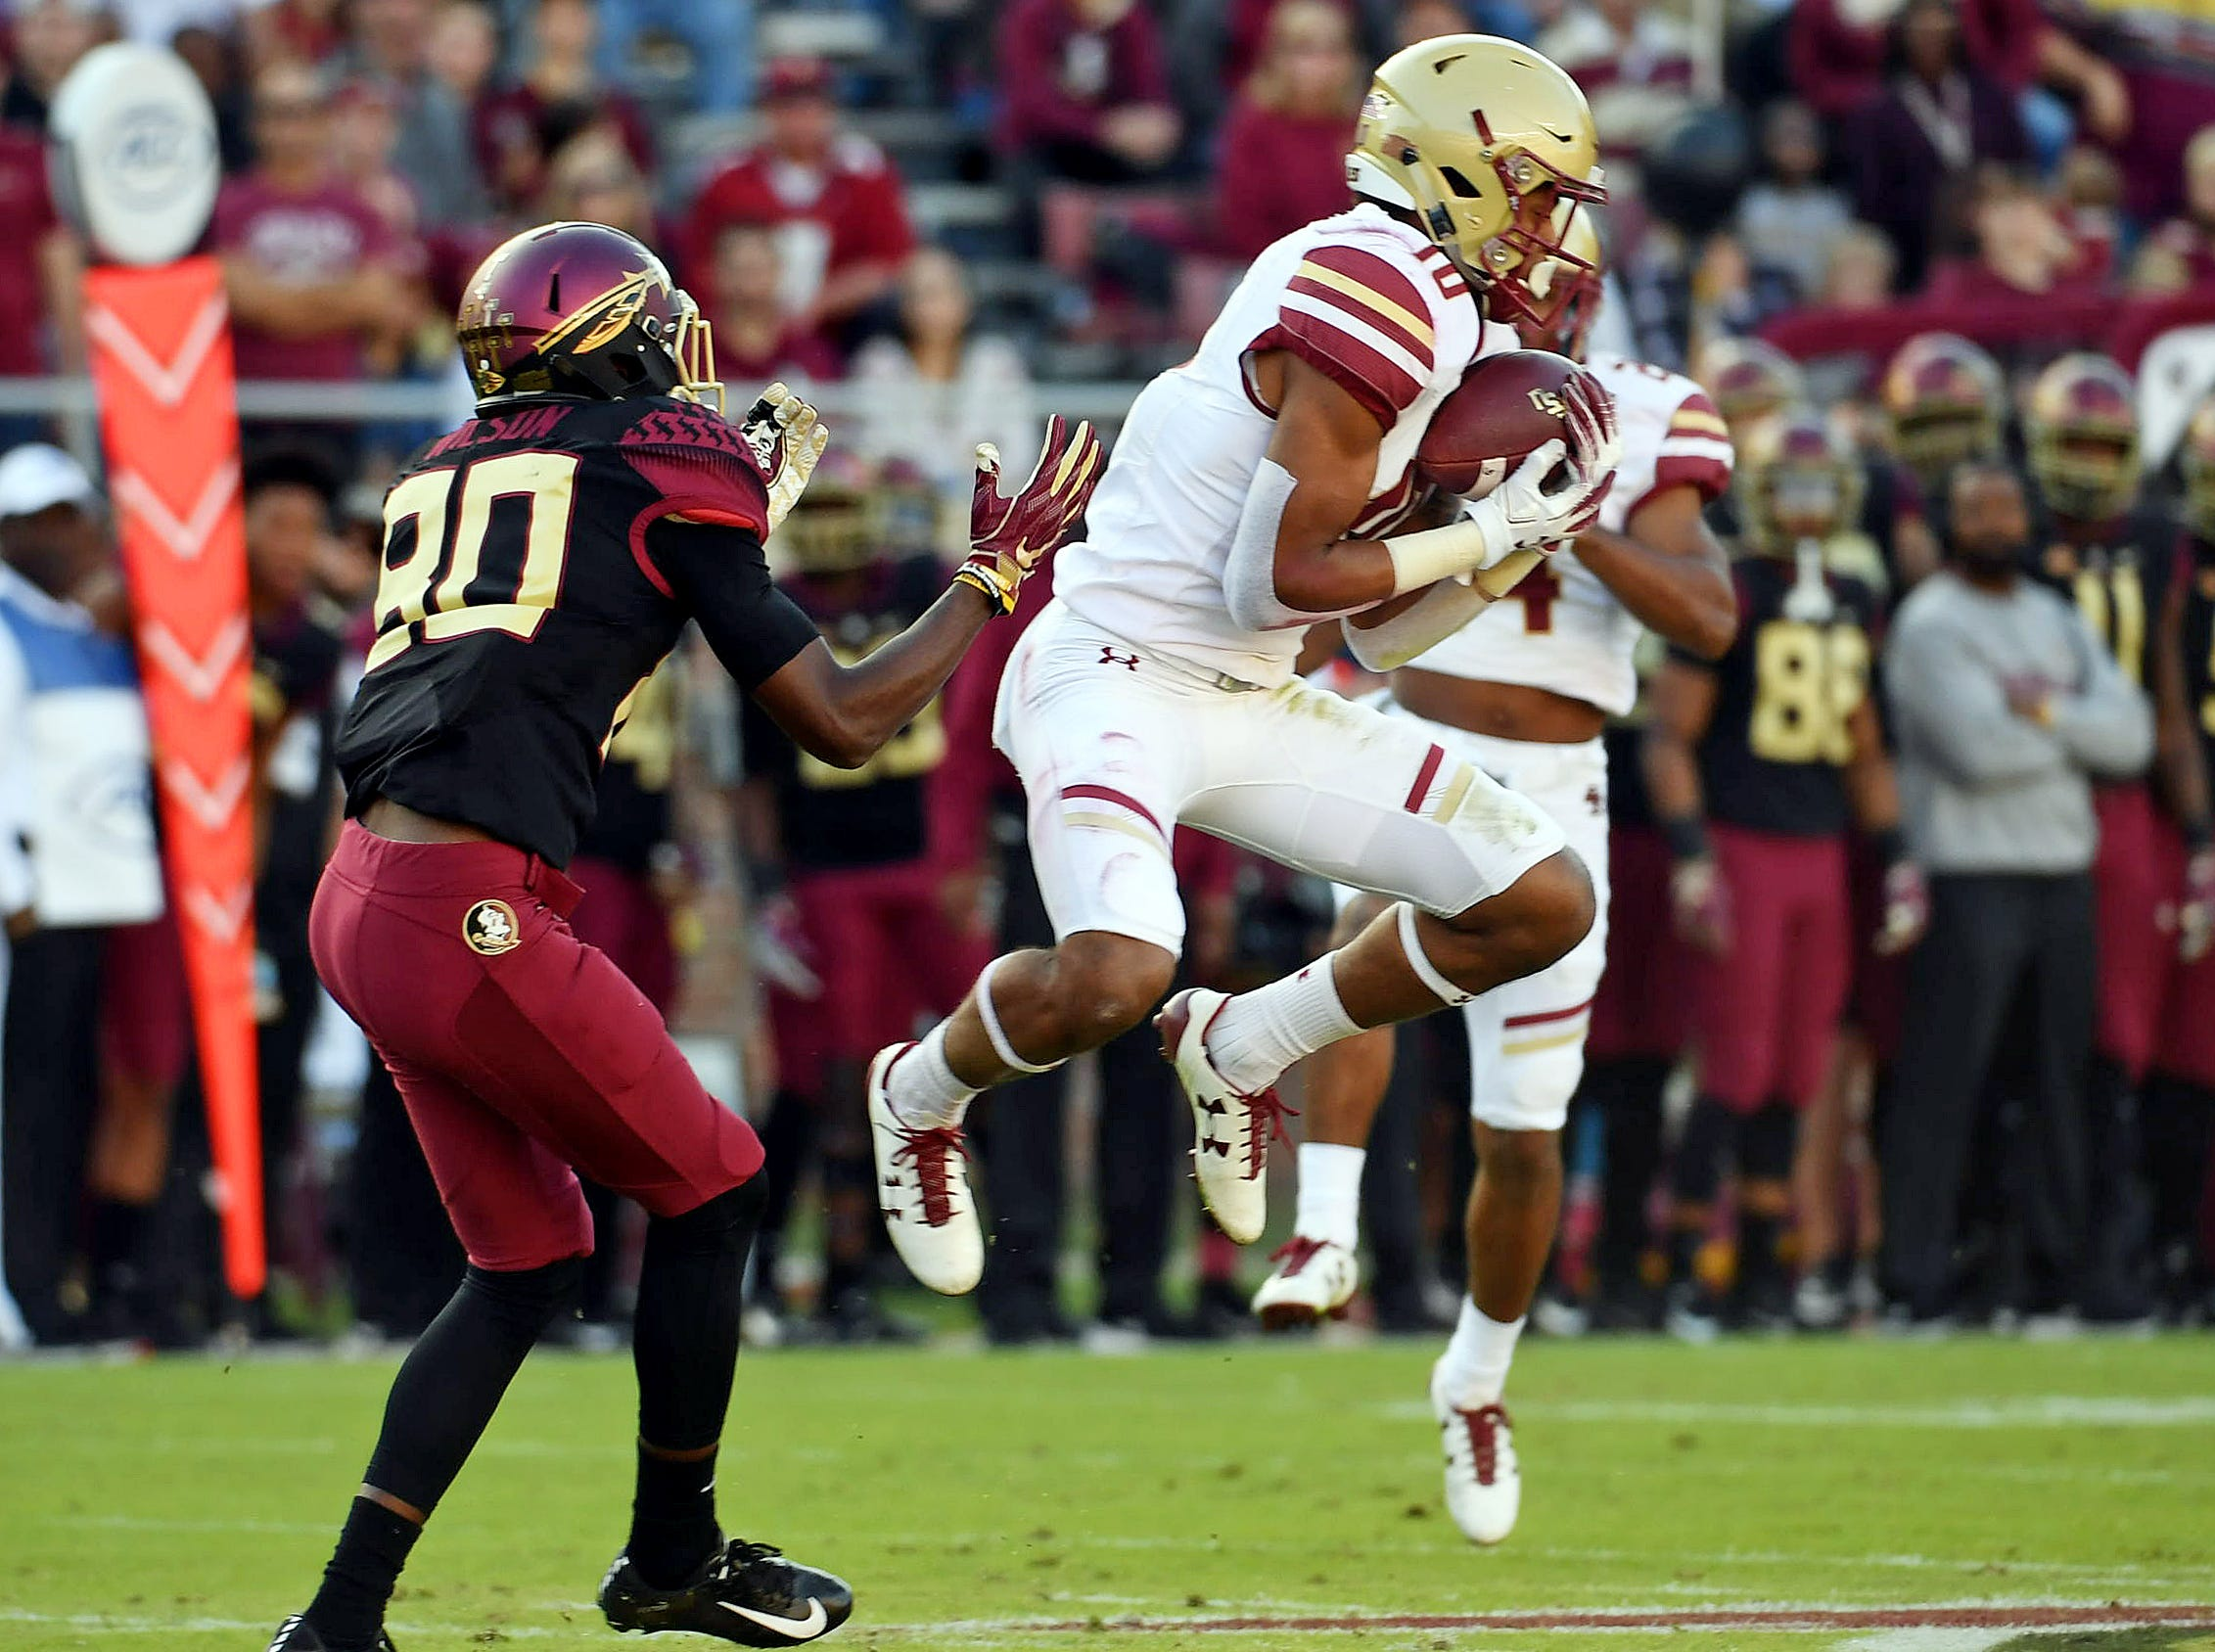 Nov 17, 2018; Tallahassee, FL, USA; Boston College Eagles defensive back Brandon Sebastian (10) intercepts a pass intended for Florida State Seminoles wide receiver Keyshawn Helton (20) during the first half at Doak Campbell Stadium. Mandatory Credit: Melina Myers-USA TODAY Sports